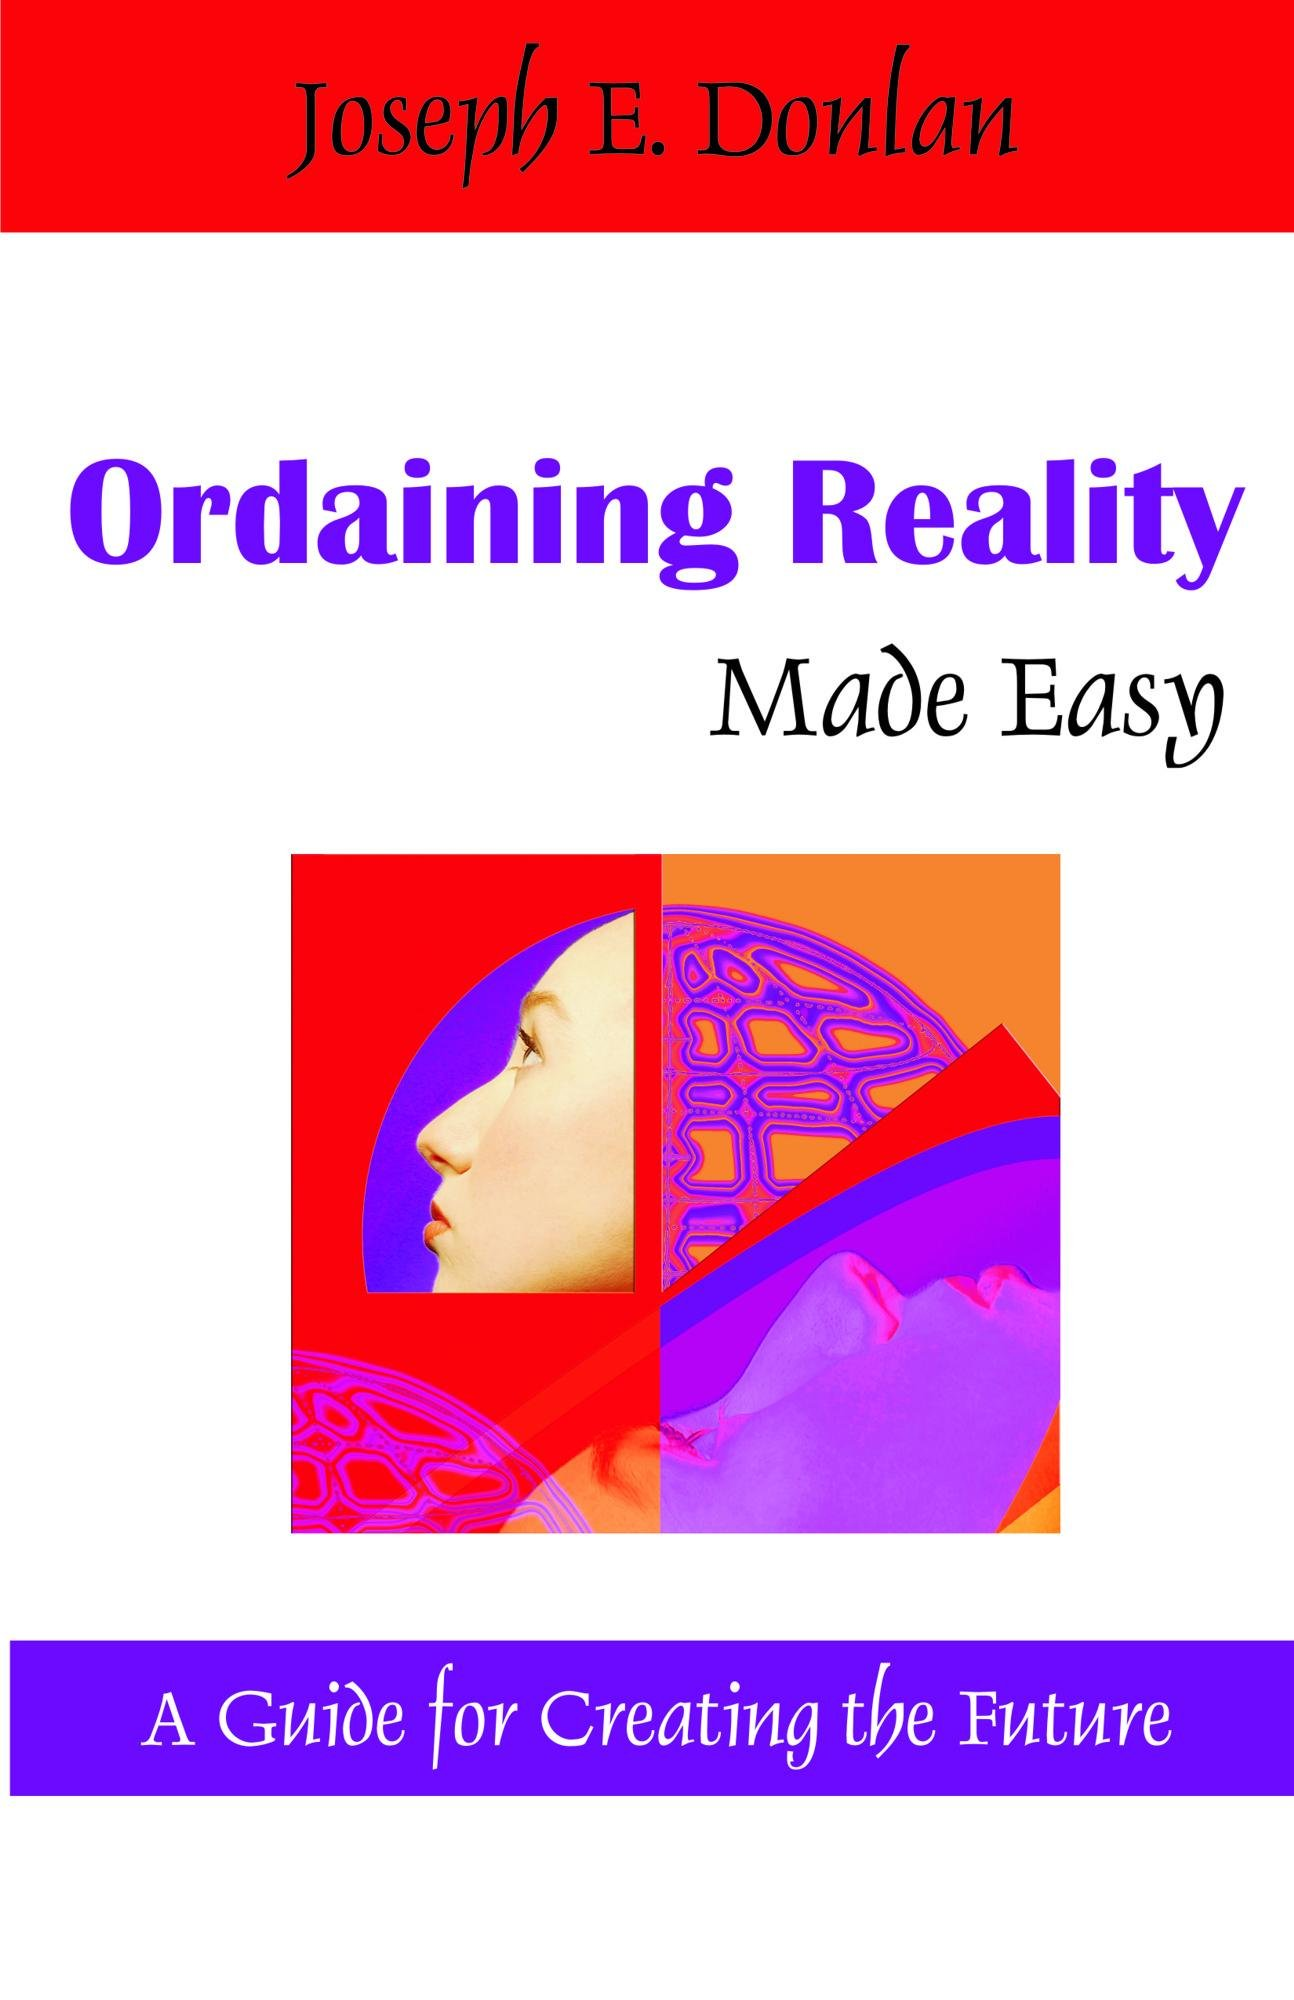 Ordaining Reality Made Easy: A Guide for Creating the Future EB9781599429090